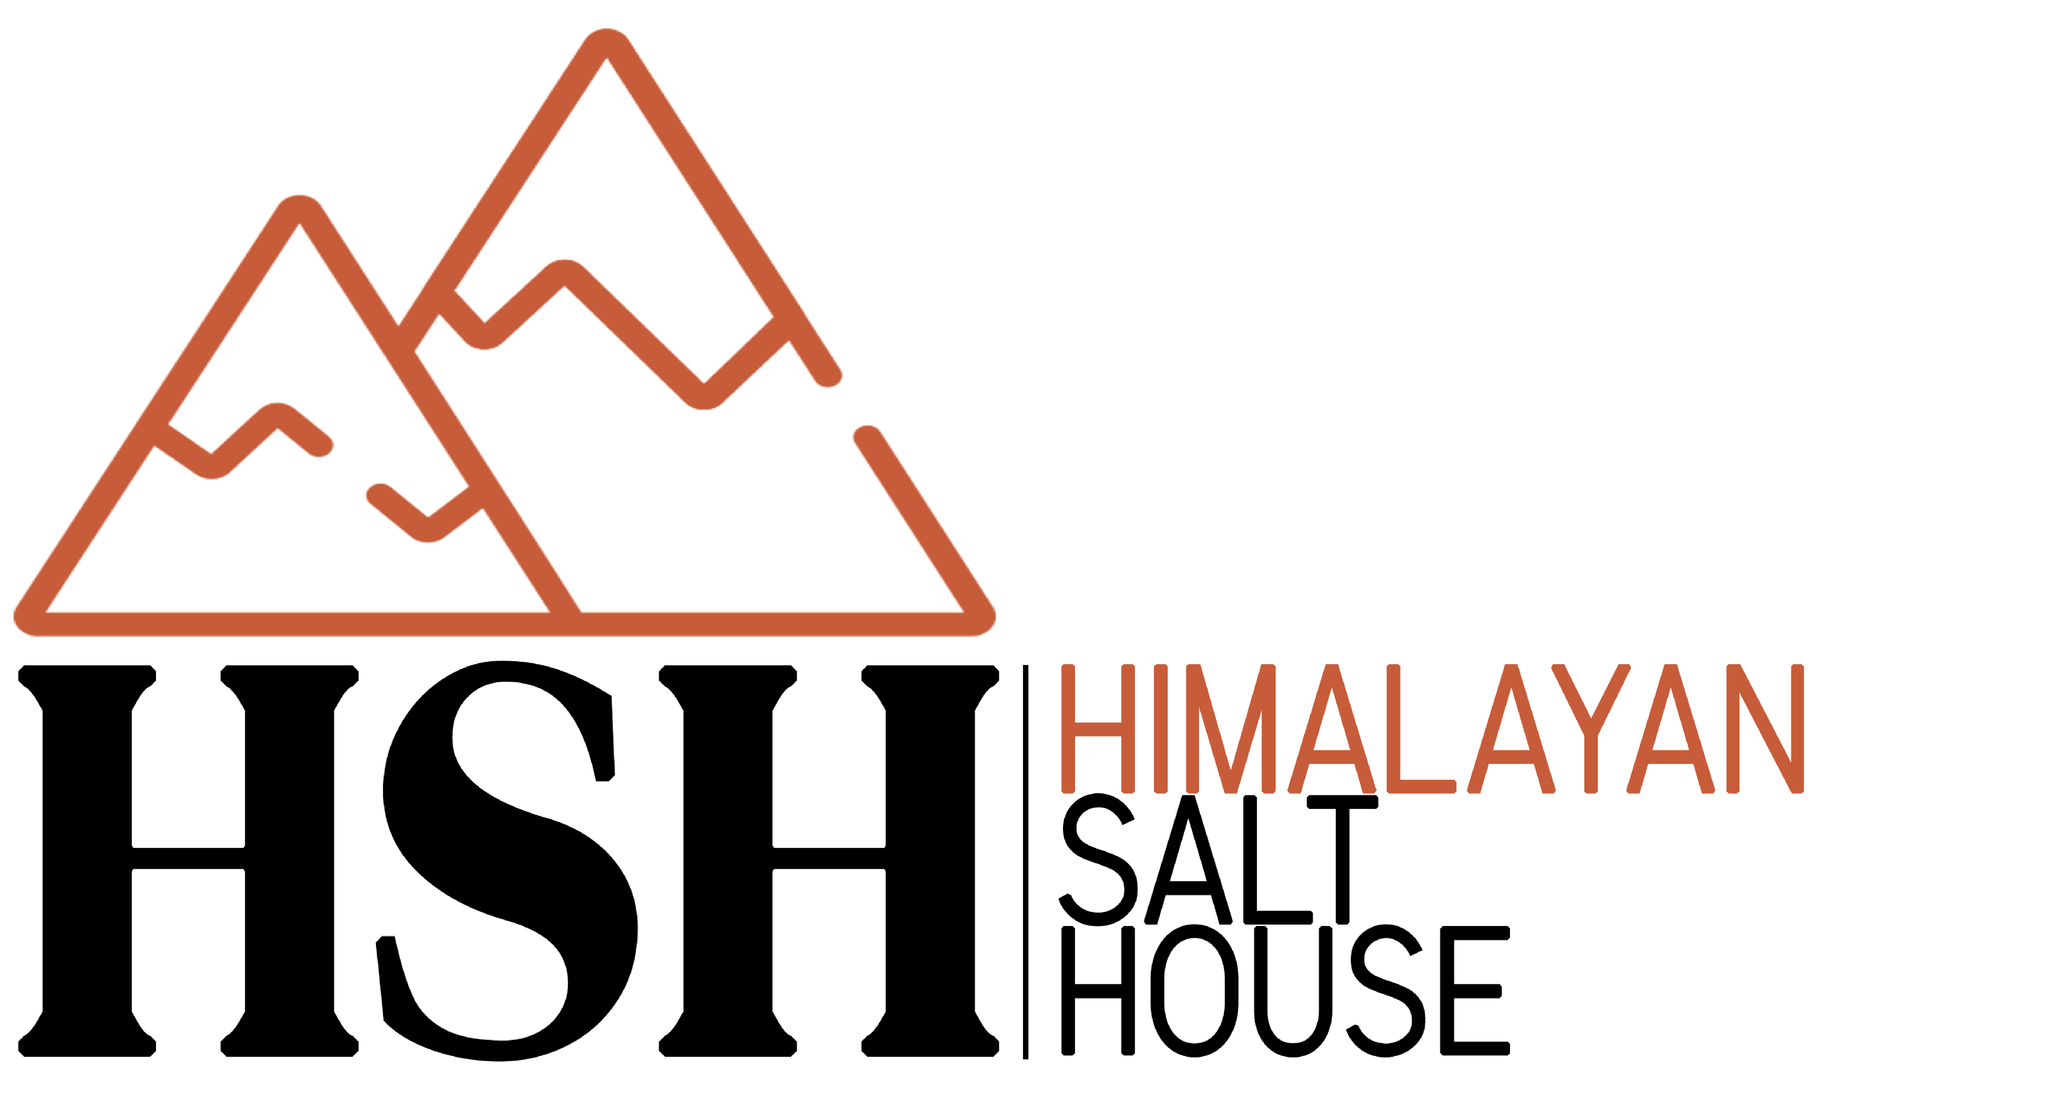 Himalayan Salt House Limited